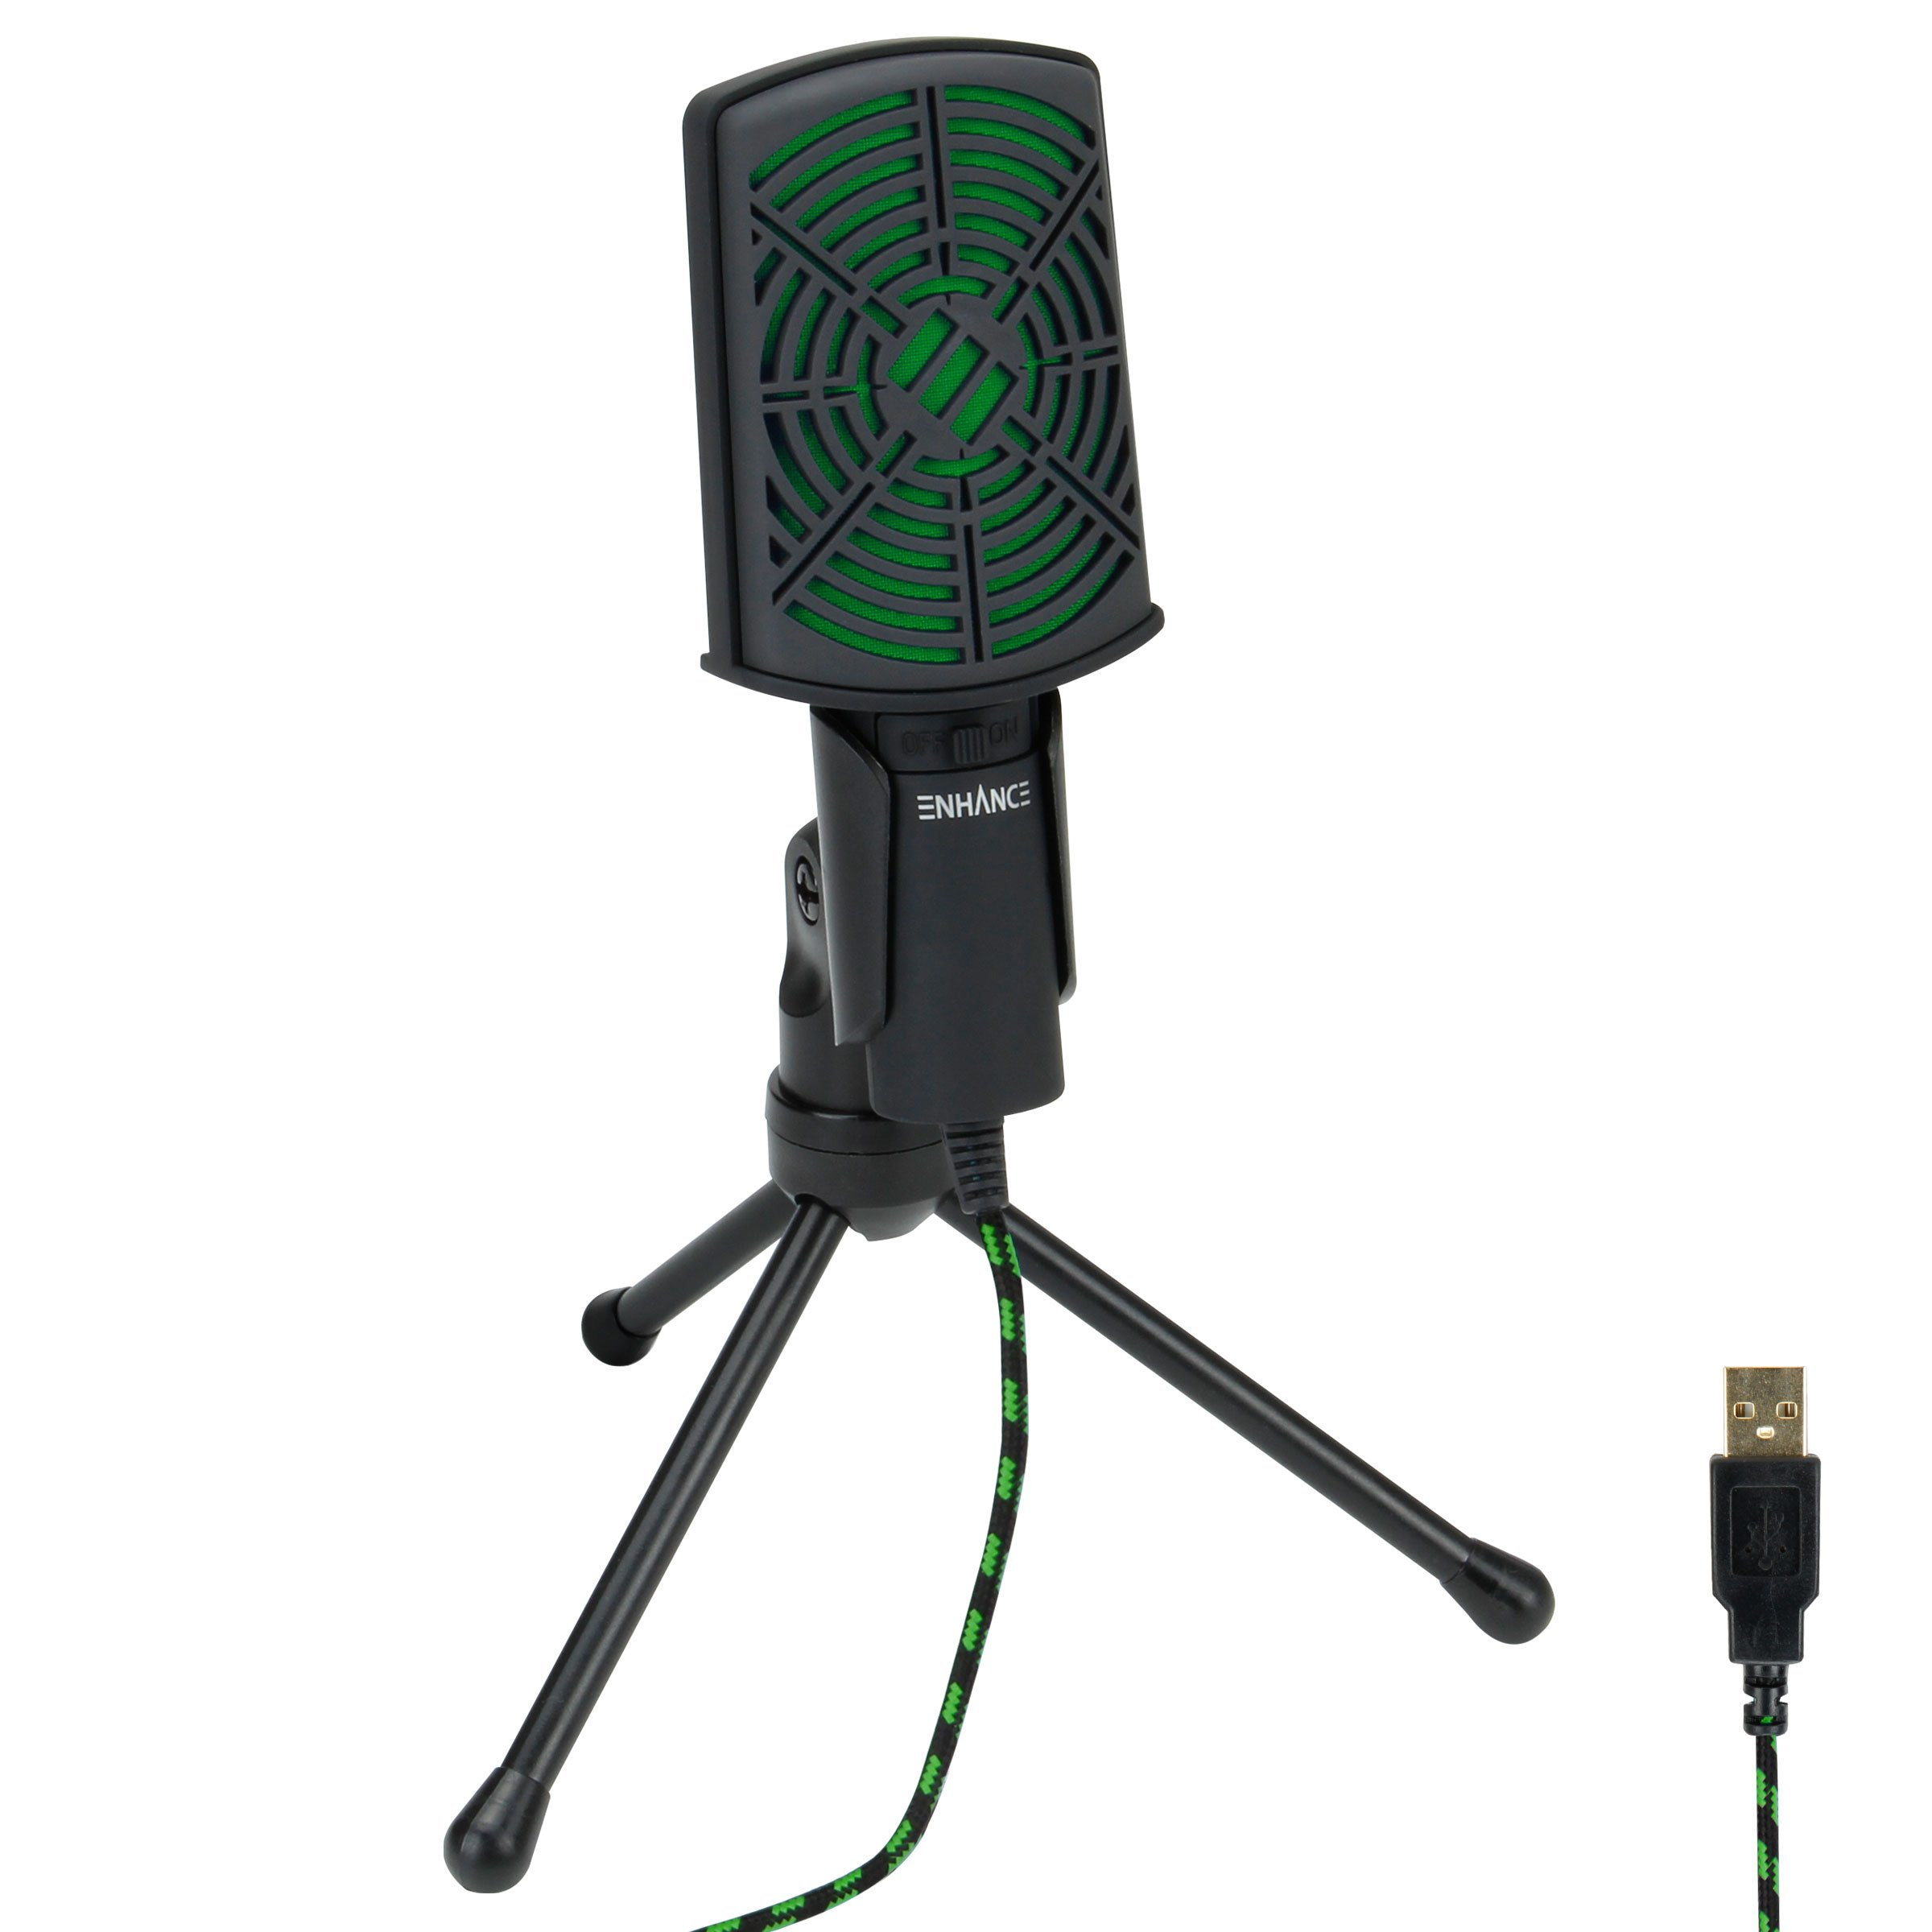 USB Condenser Gaming Microphone - Computer Recording Streaming Mic with Adjustable Stand Design and Mute Switch by ENHANCE - For Skype, Conference Calls, Twitch, Youtube, and Discord - Green